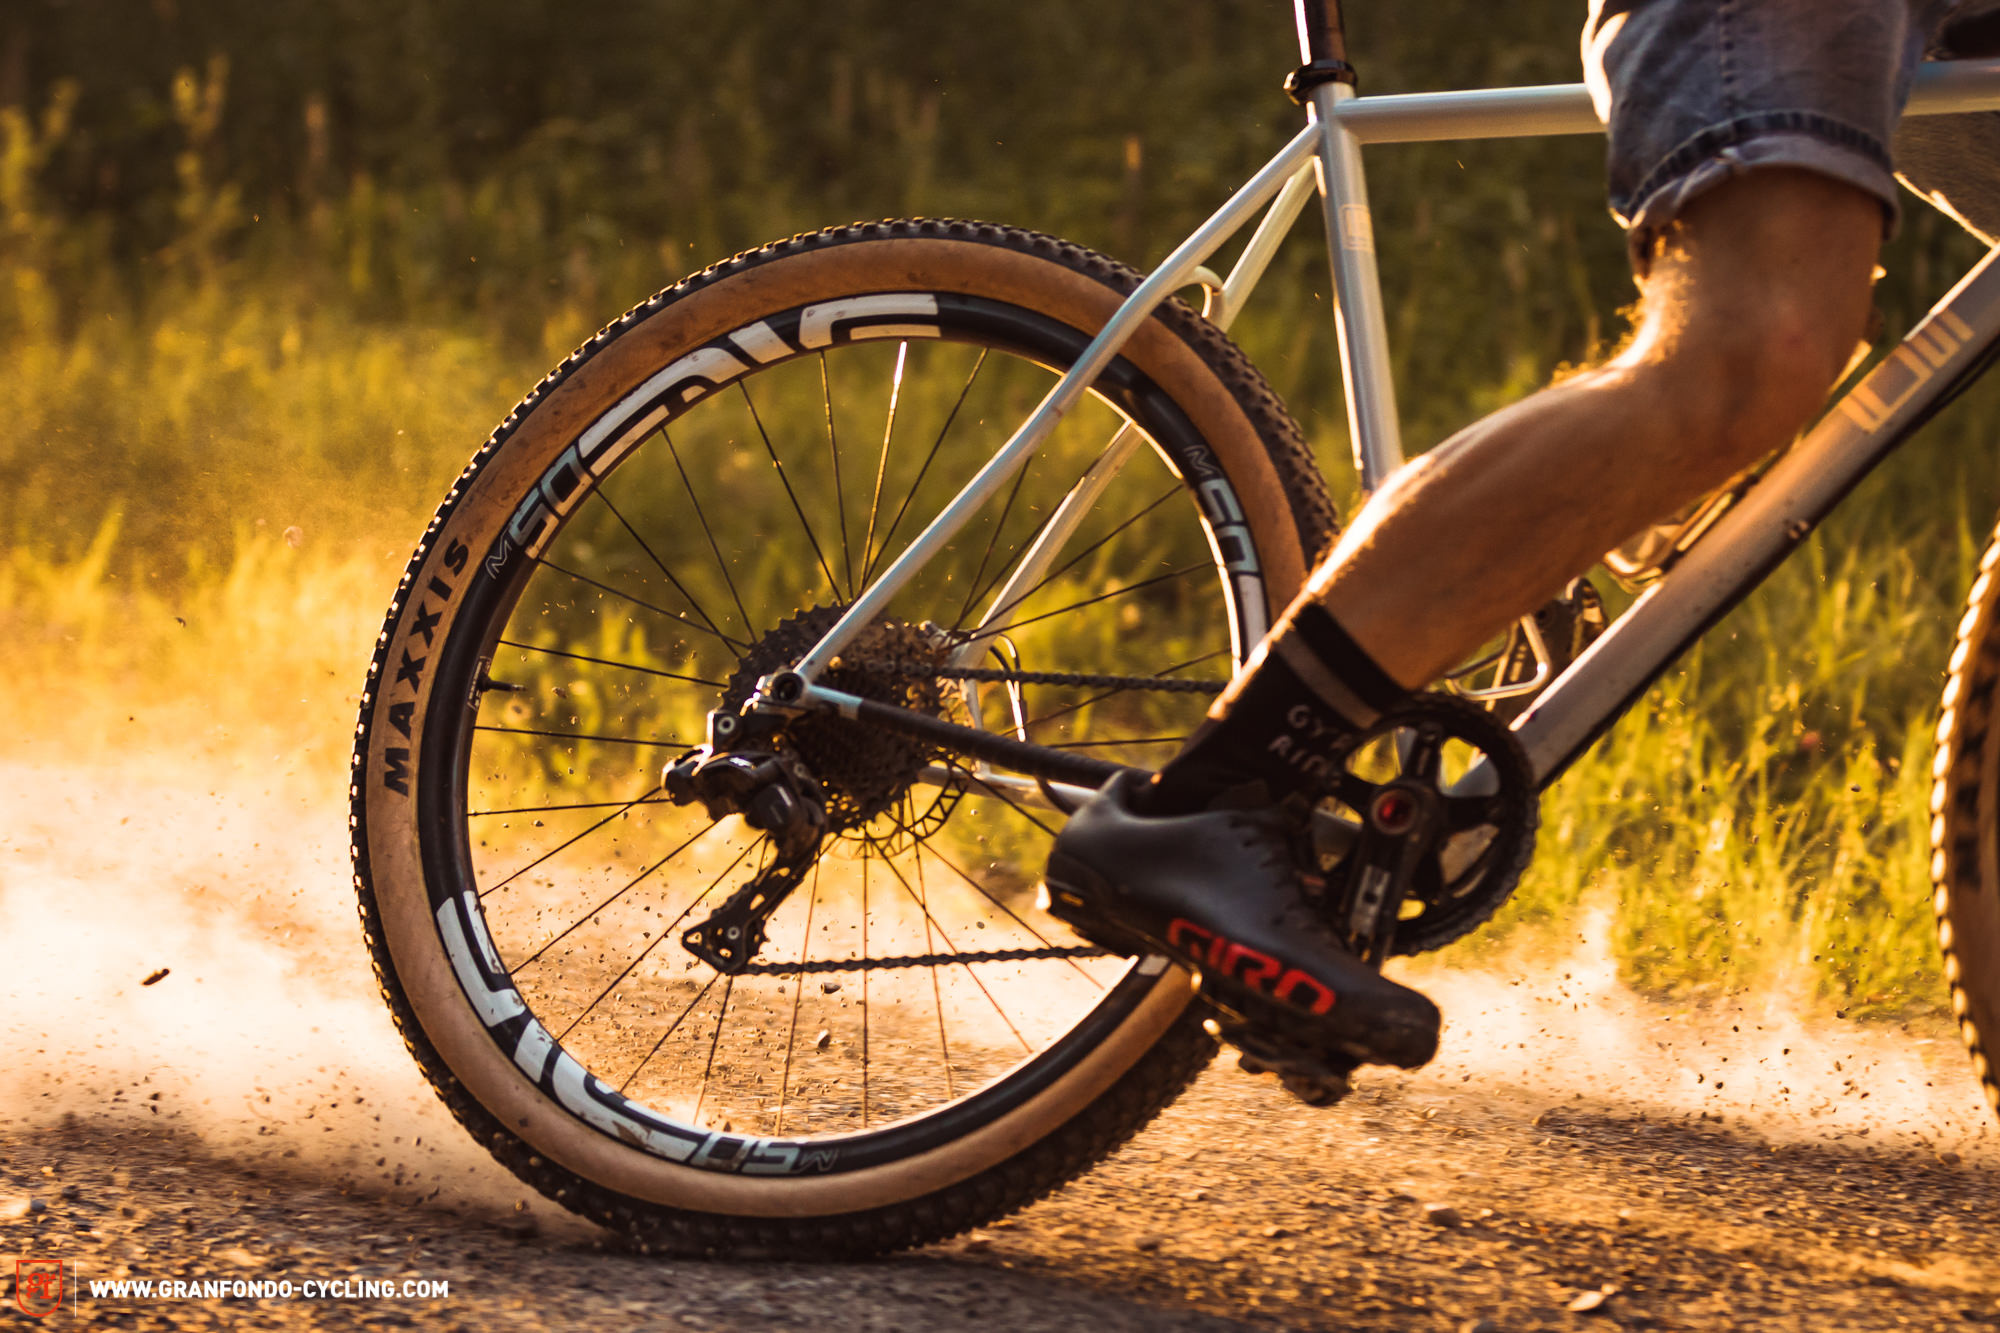 The Gravel Bike Guide – All you need to know about Gravel Bikes